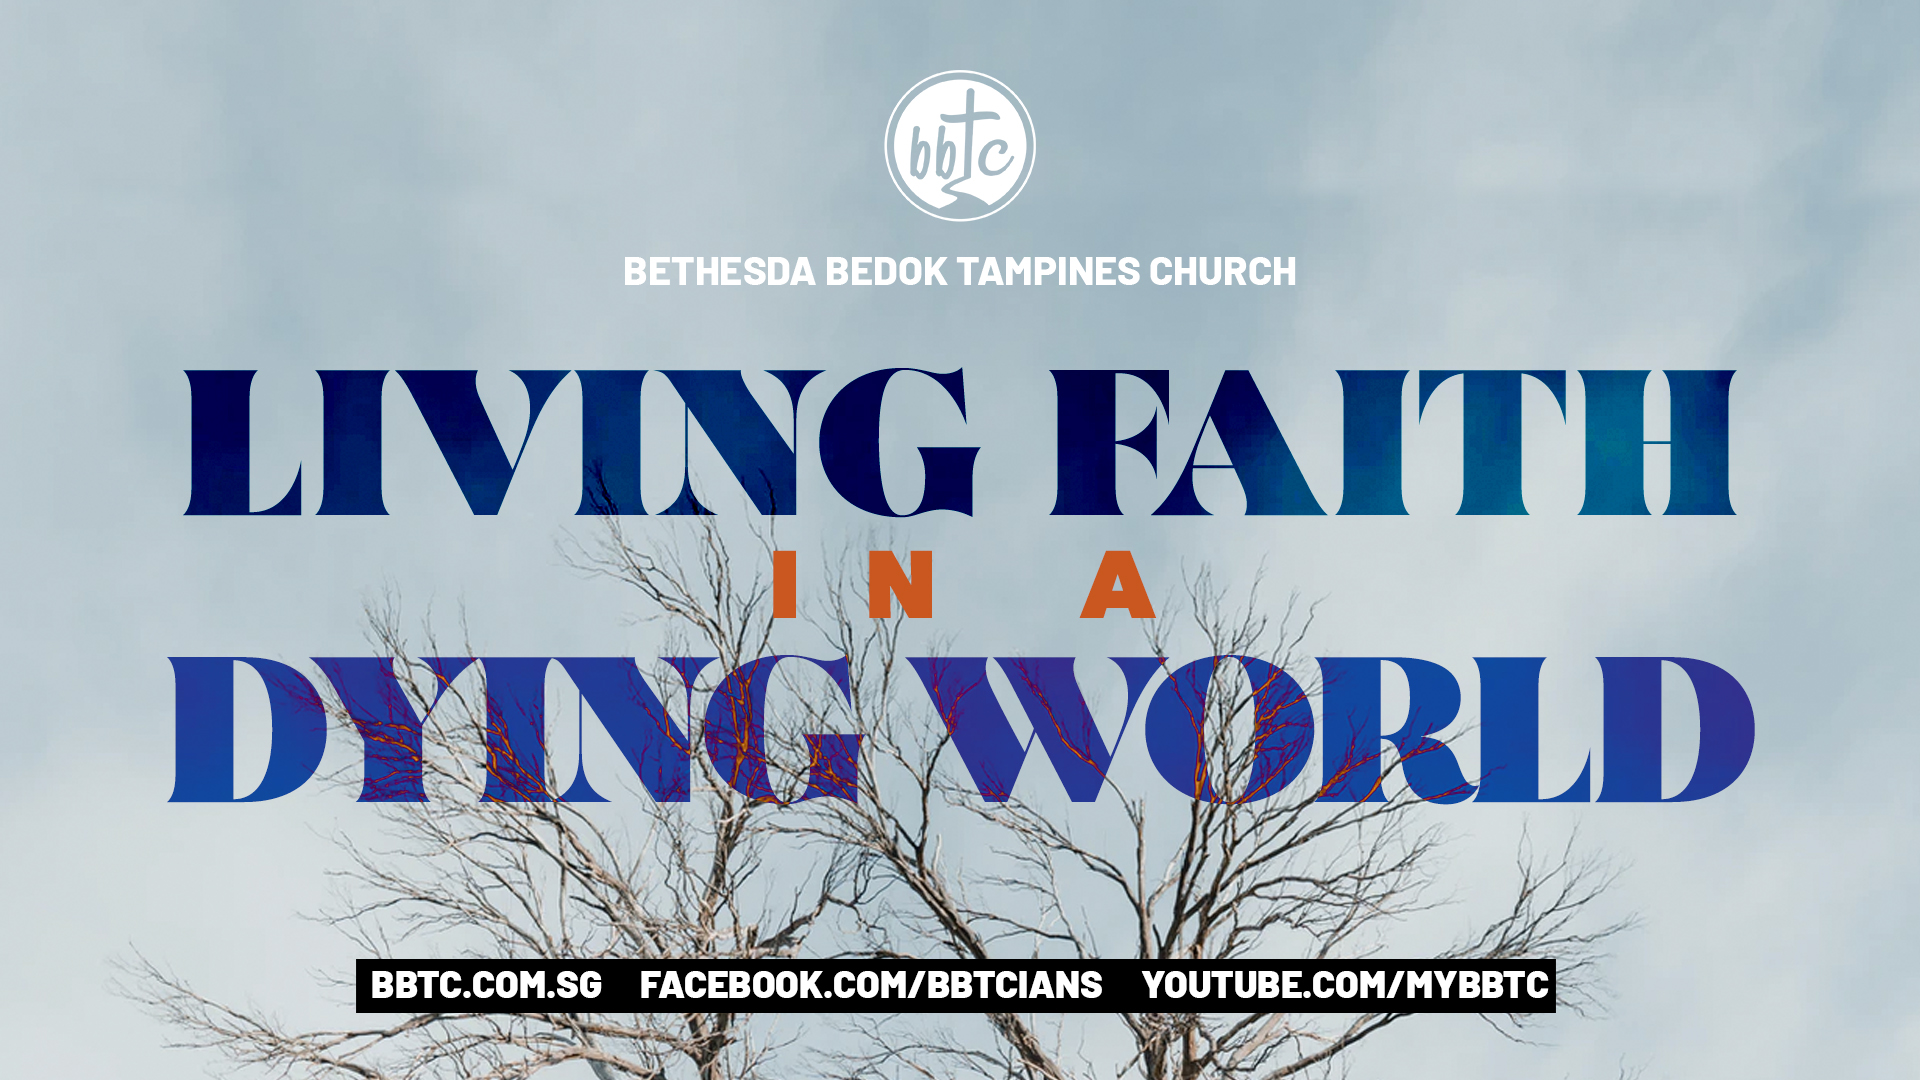 LIVING FAITH IN A DYING WORLD